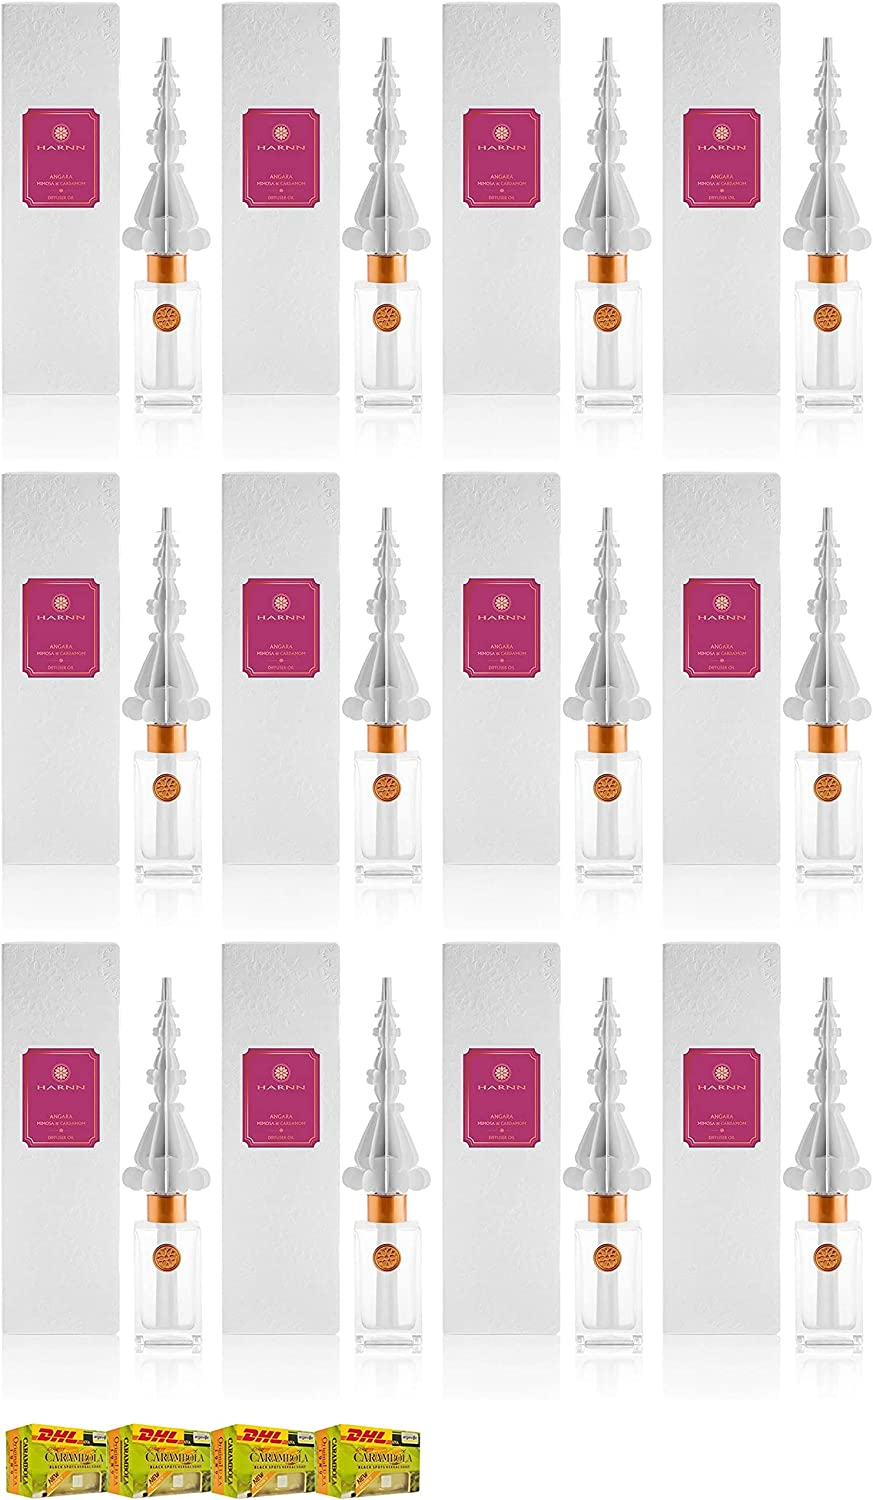 Ml. Harnn Angara Mimosa Cardamom A4 Oil Set Special Weekly update Campaign 100 Diffuser